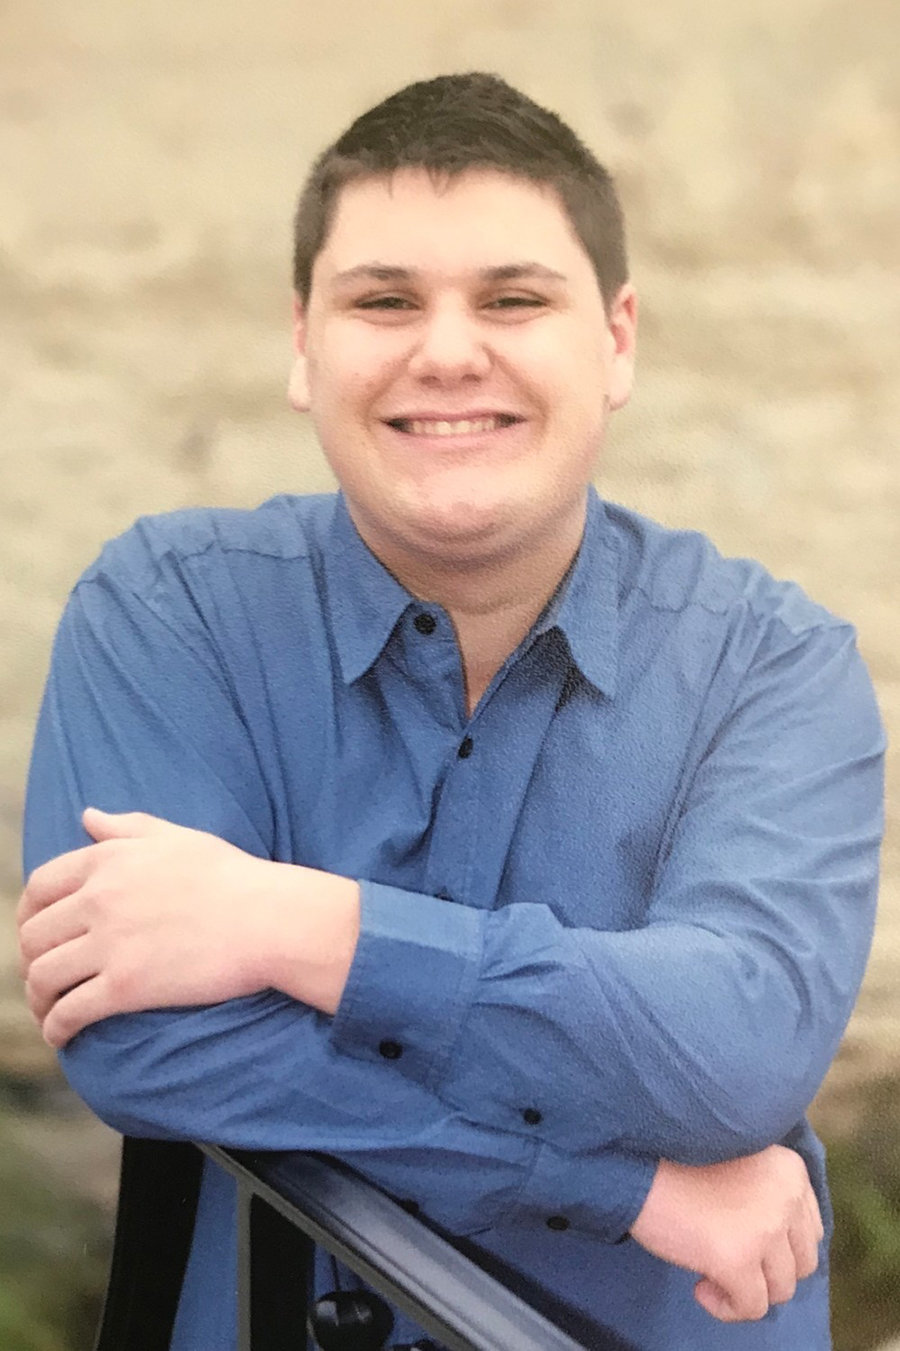 Thomas Tallarino, son of Teri Tallarino, Beech Street, and Mark Tallarino, Locust Street, is attending SUNY Oswego, where he is majoring in broadcasting and mass communication. He is a graduate of Rome Free Academy.